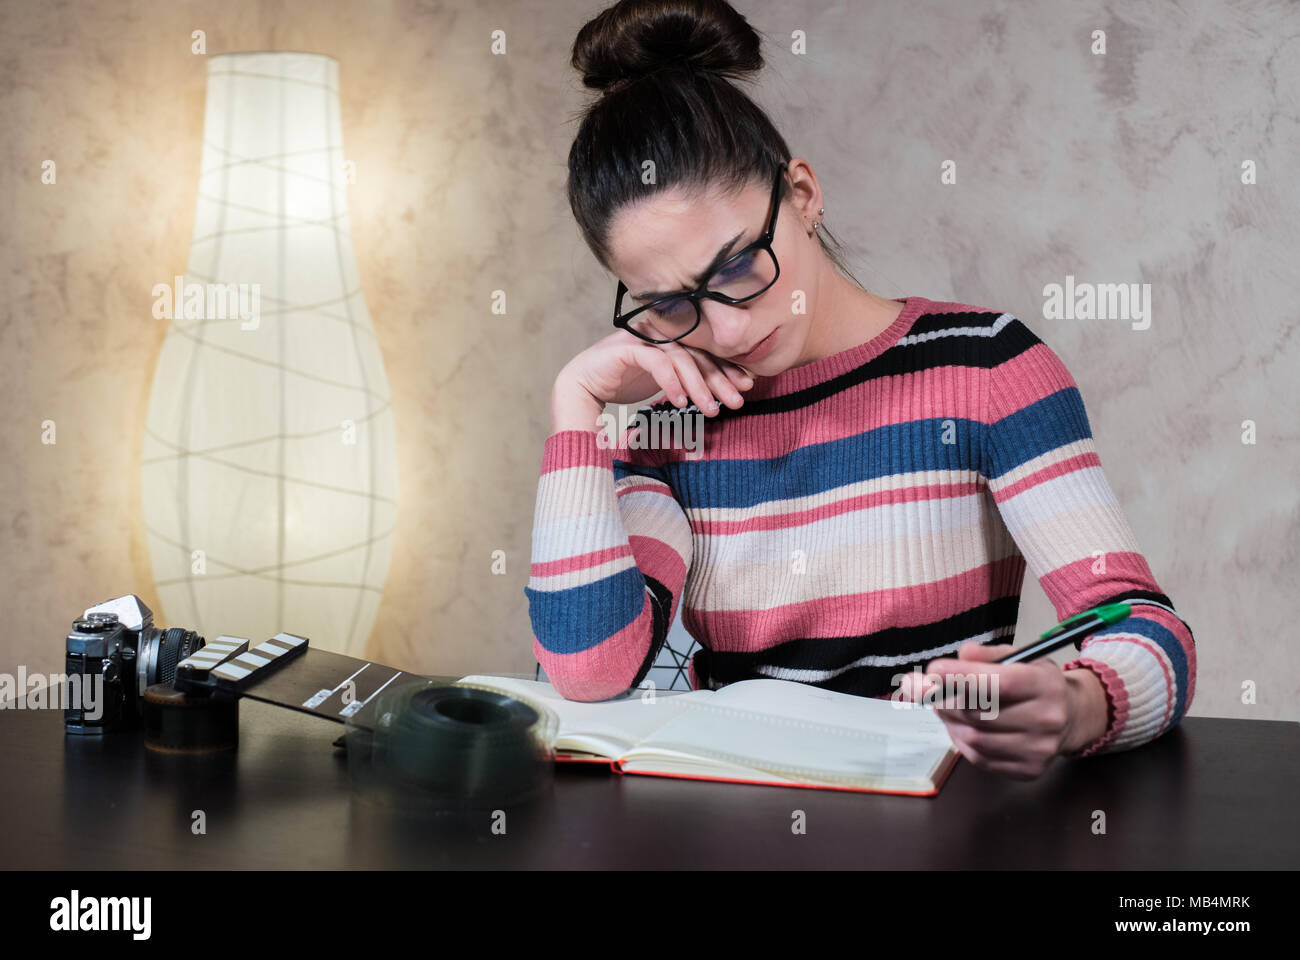 Young attractive woman thoughtful working writing script with movie objects on desktop - Stock Image